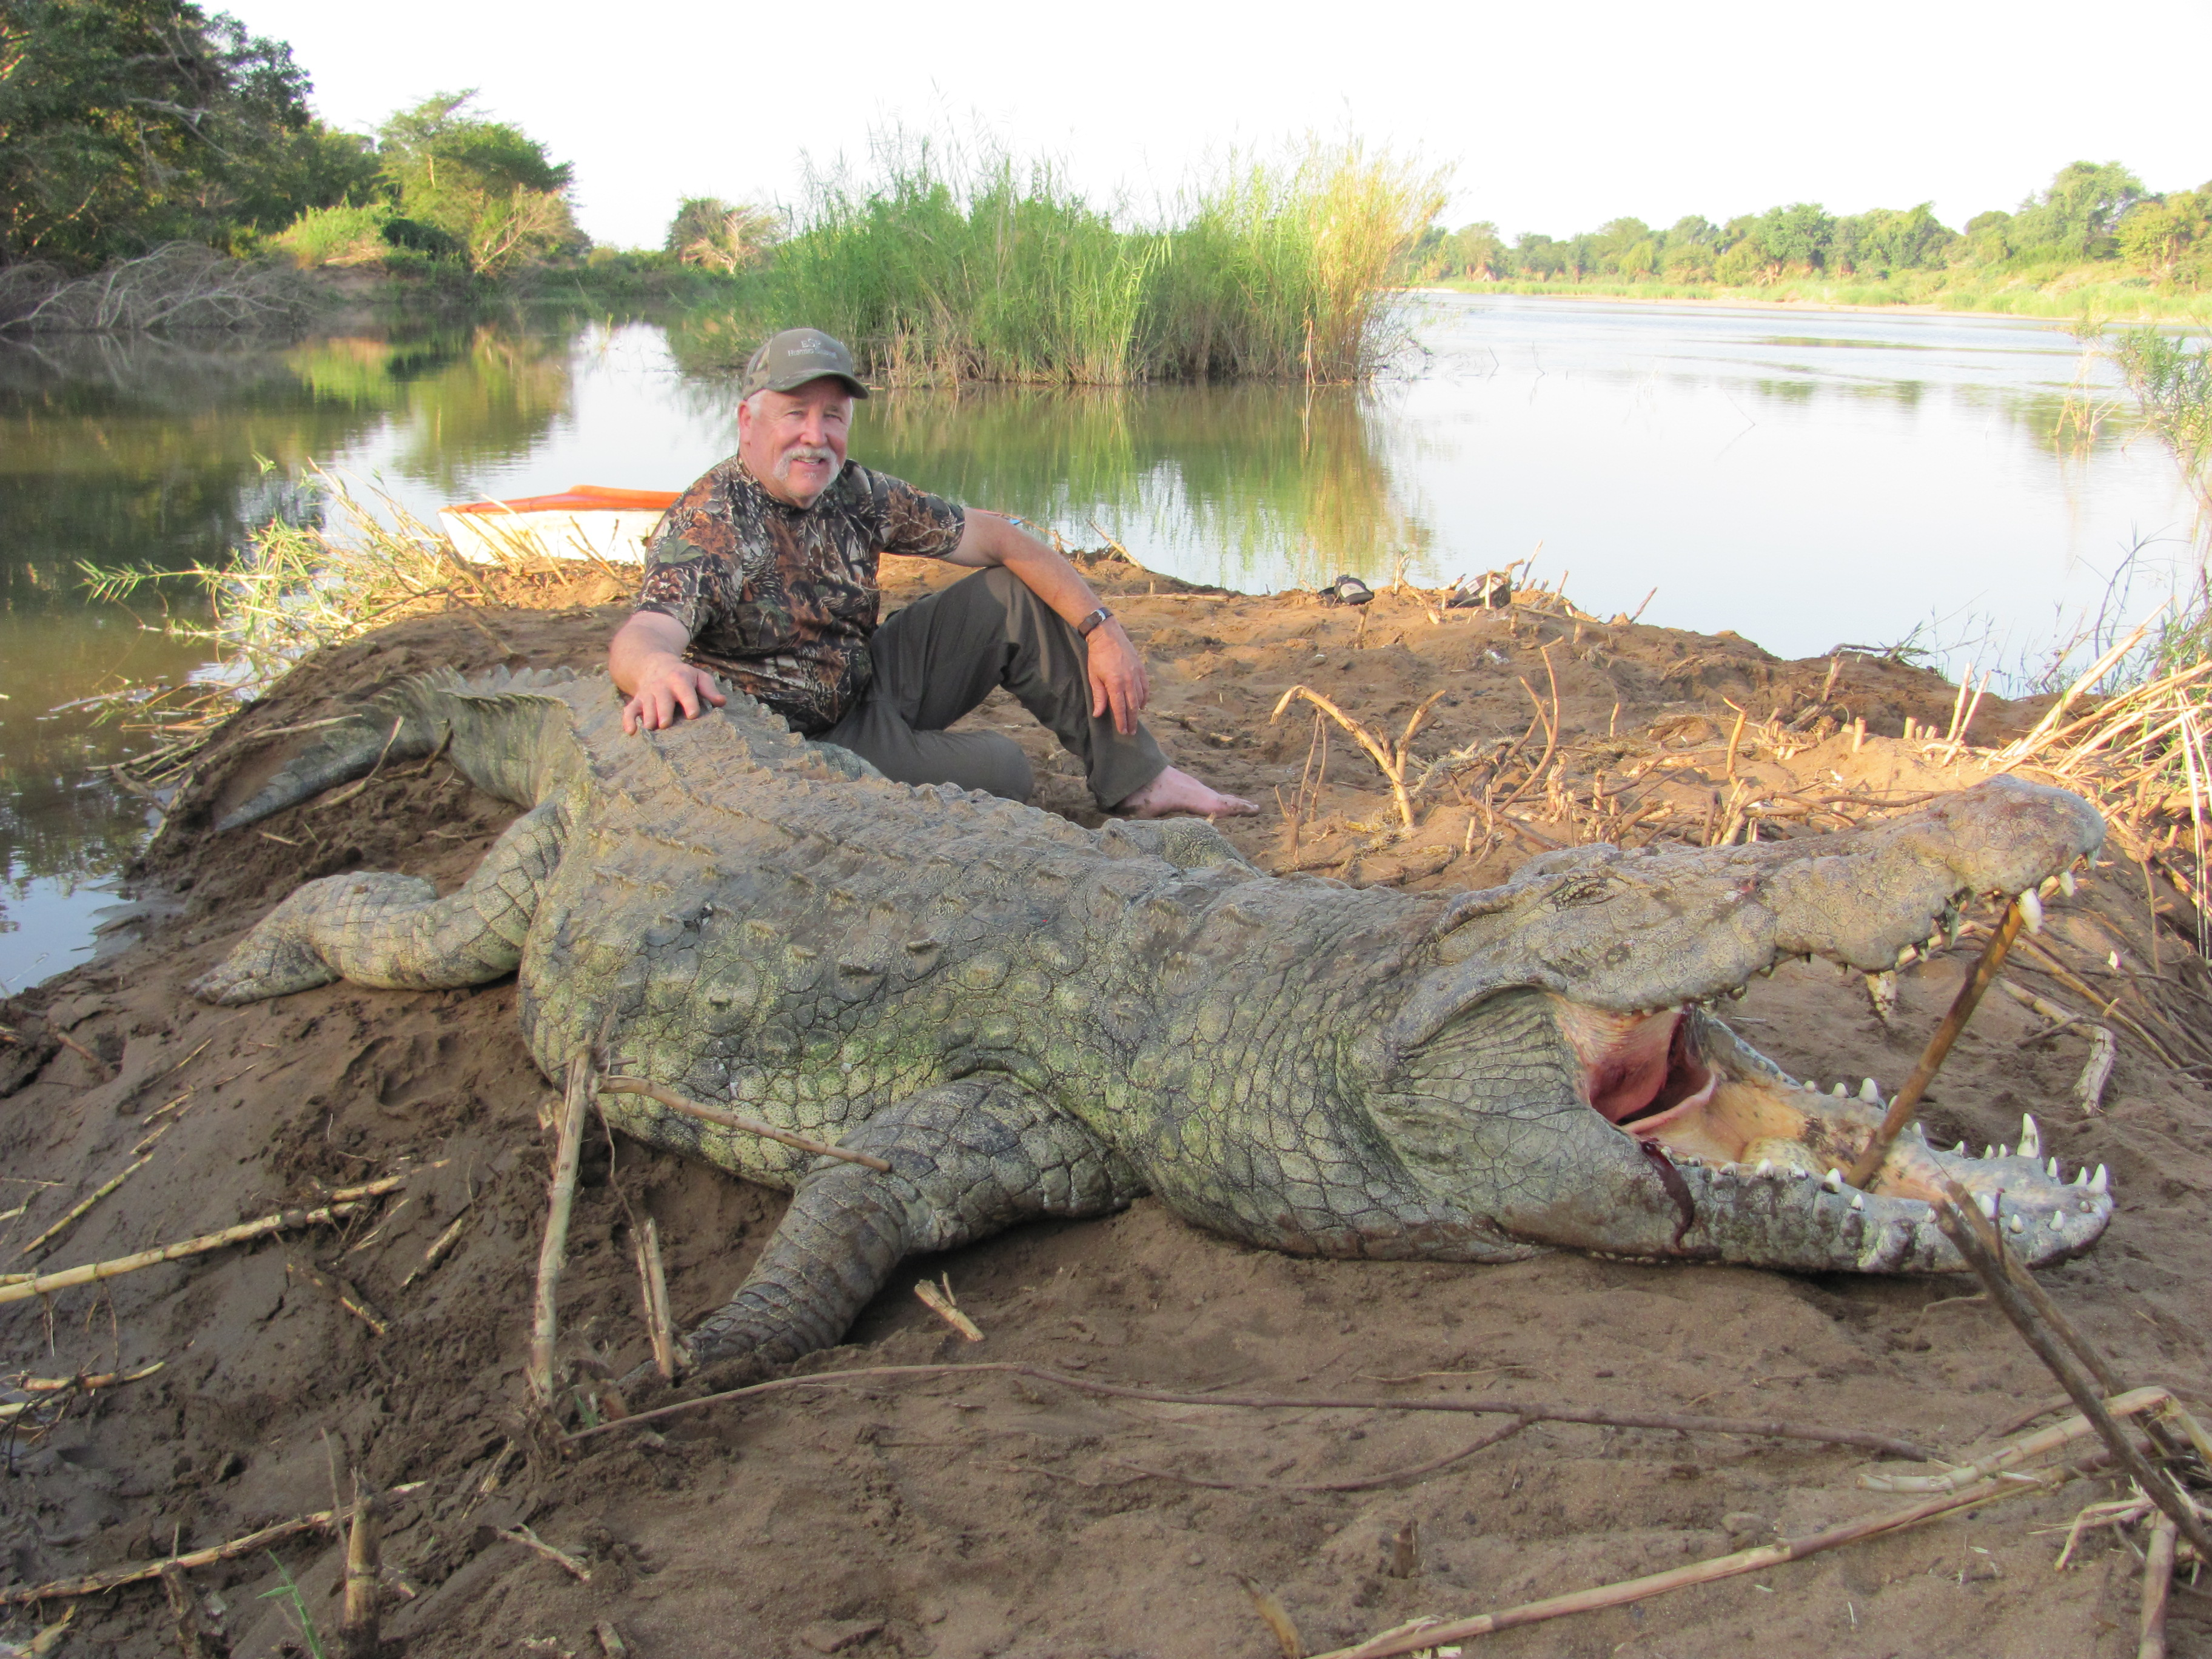 Crocodile eating man alive - photo#12